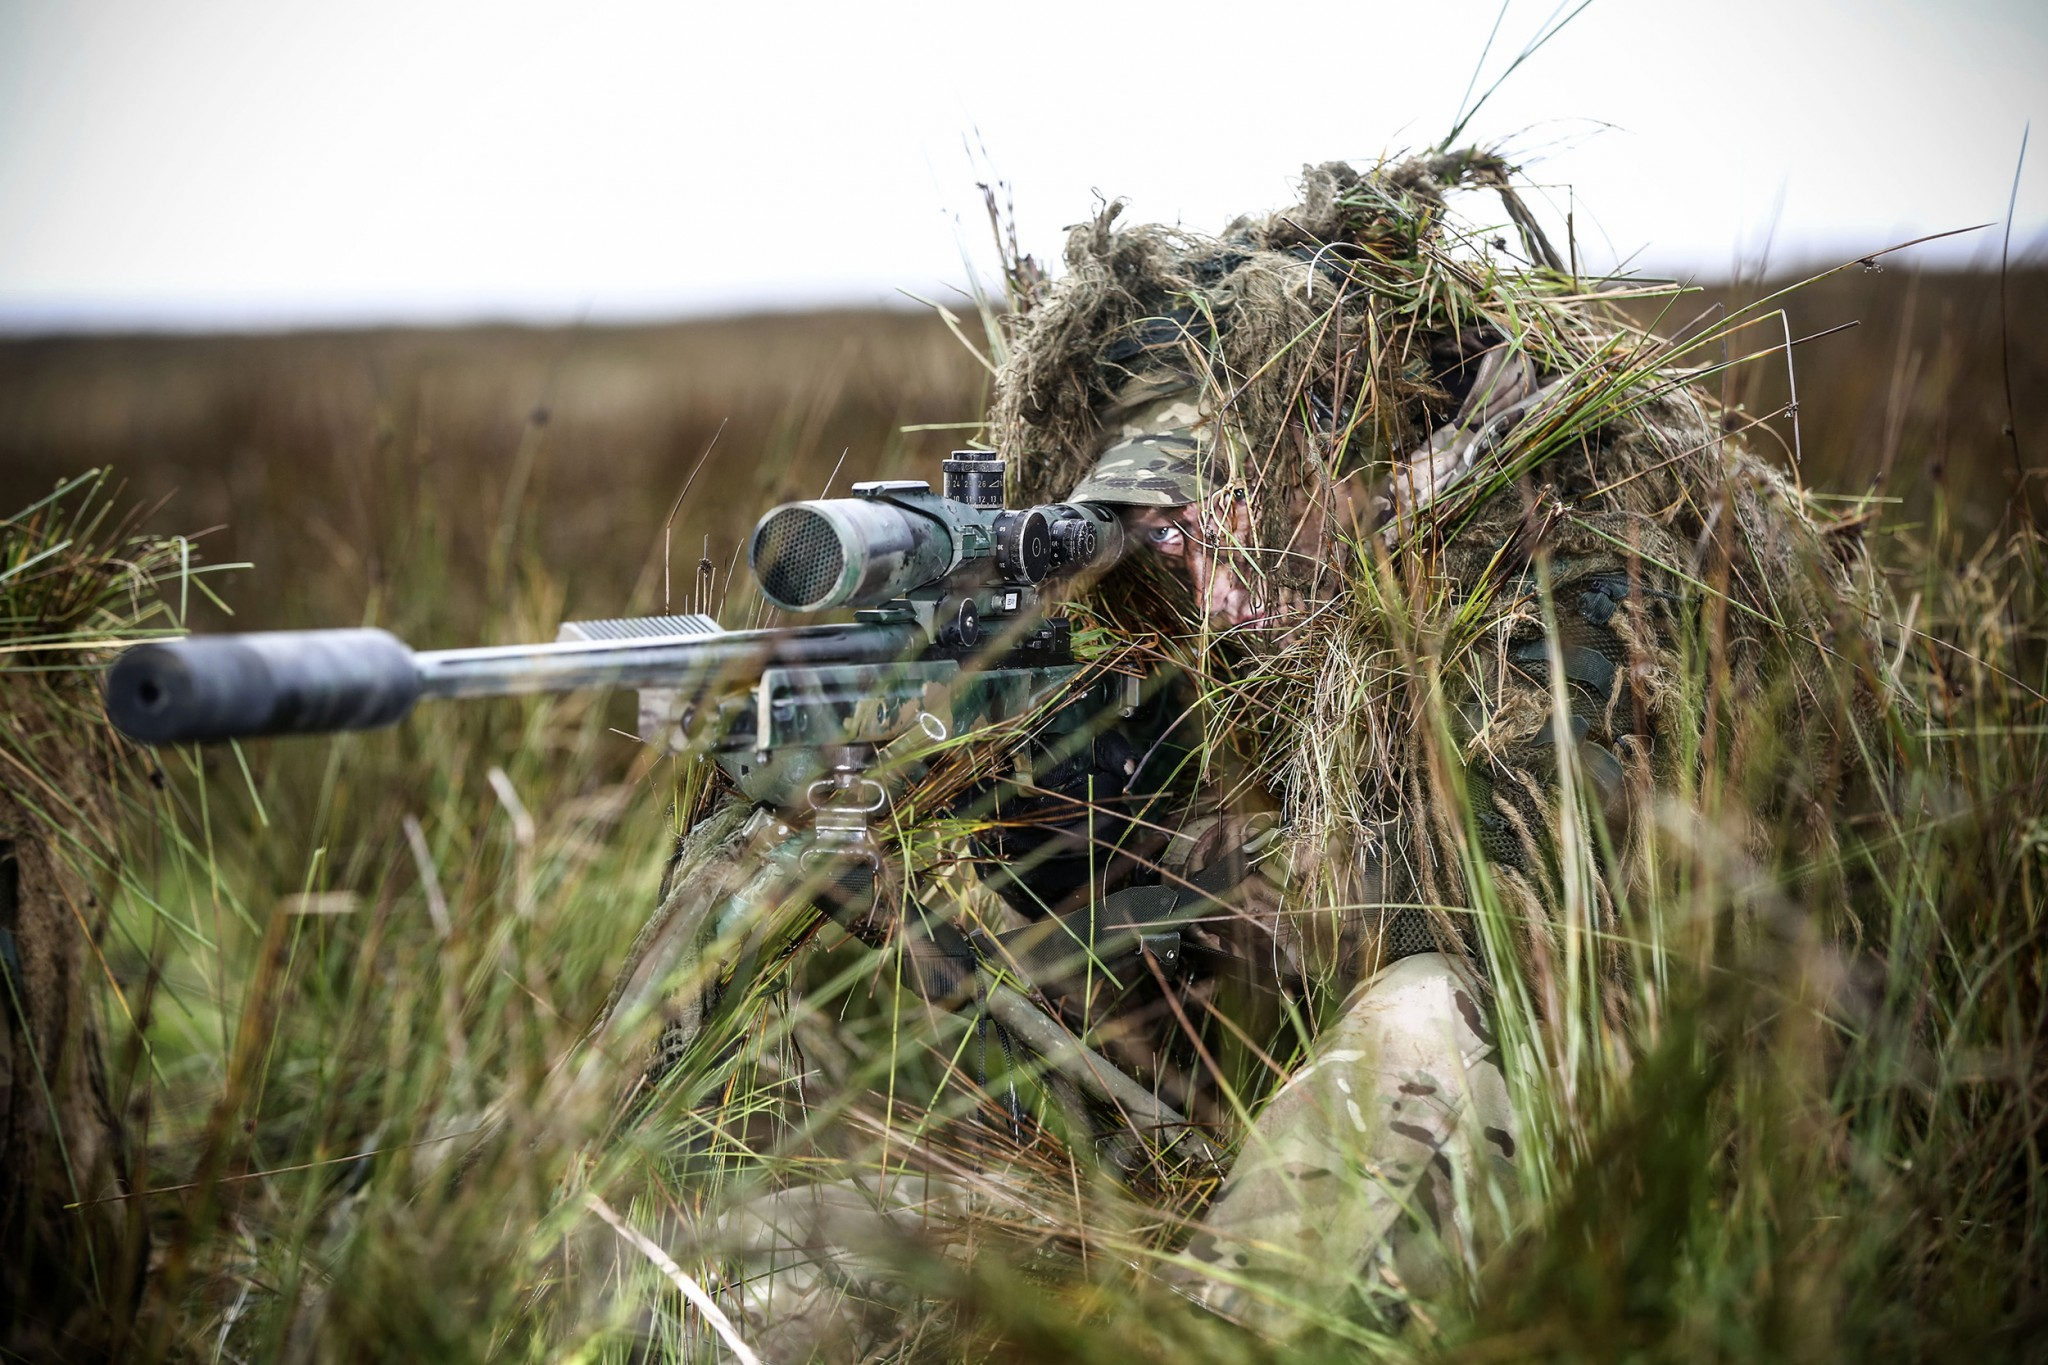 Pictured is a sniper from 34 Squadron, The Royal Air Force Regiment